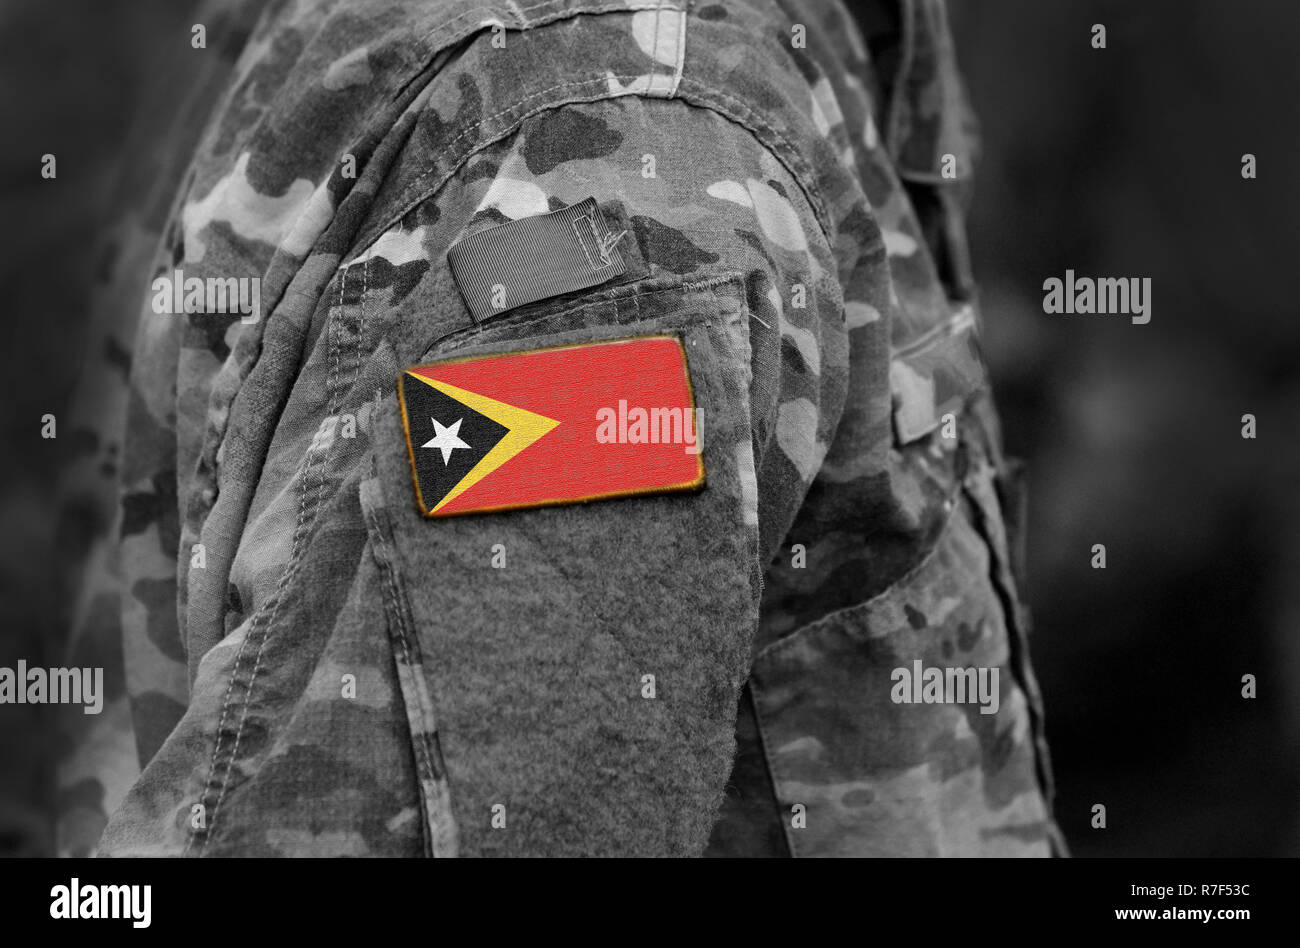 Flag of East Timor on soldiers arm. Flag of East Timor on military uniforms (collage). - Stock Image